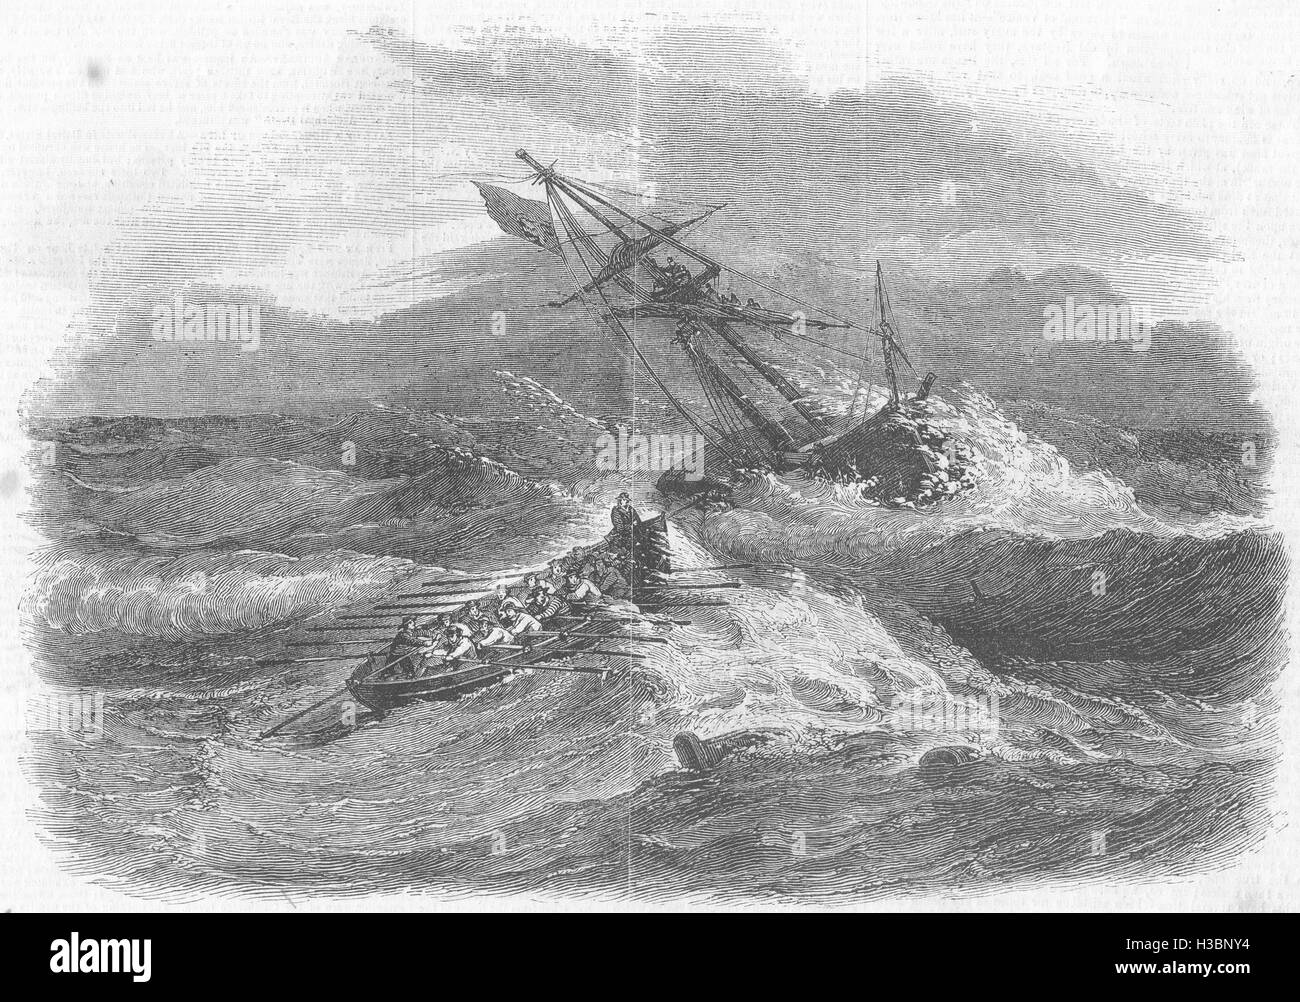 WALES Rhyl lifeboat saving crew of Brigantine wrecked Pansern, Abergele 1857. The Illustrated London News - Stock Image